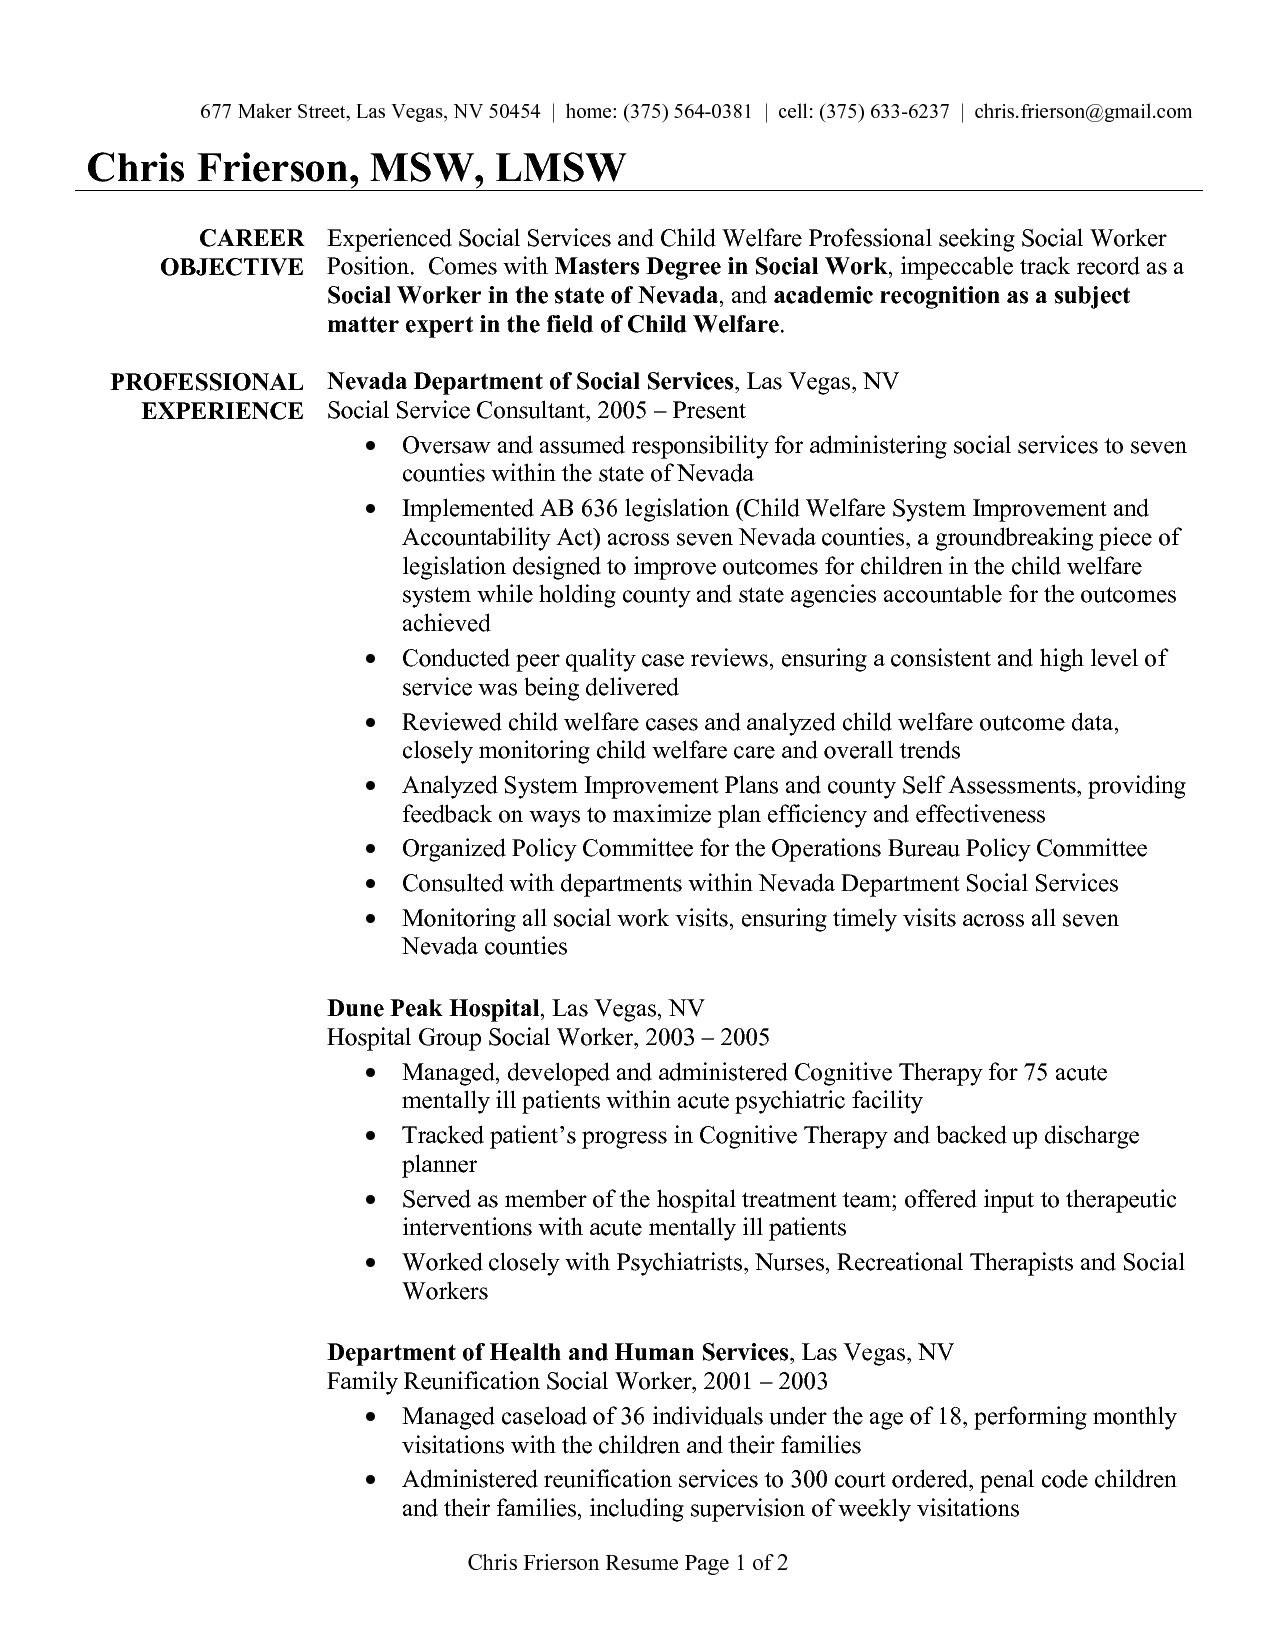 social work resume examples social worker resume sample - Social Worker Resume Sample